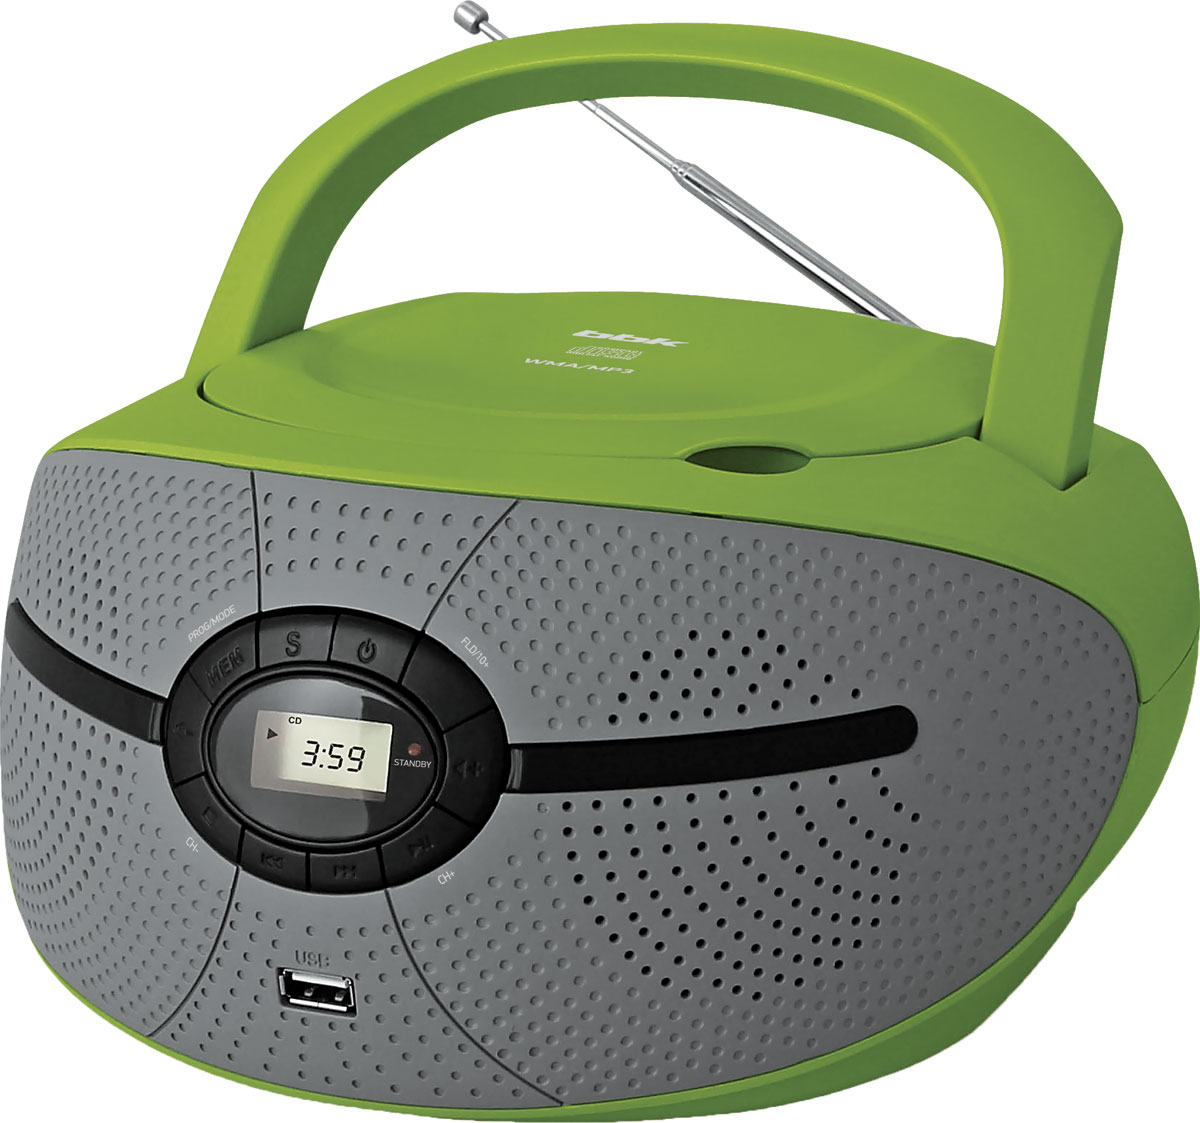 Магнитола BBK BX195U, Green Grey CD/MP3 магнитола bbk bx325u green grey